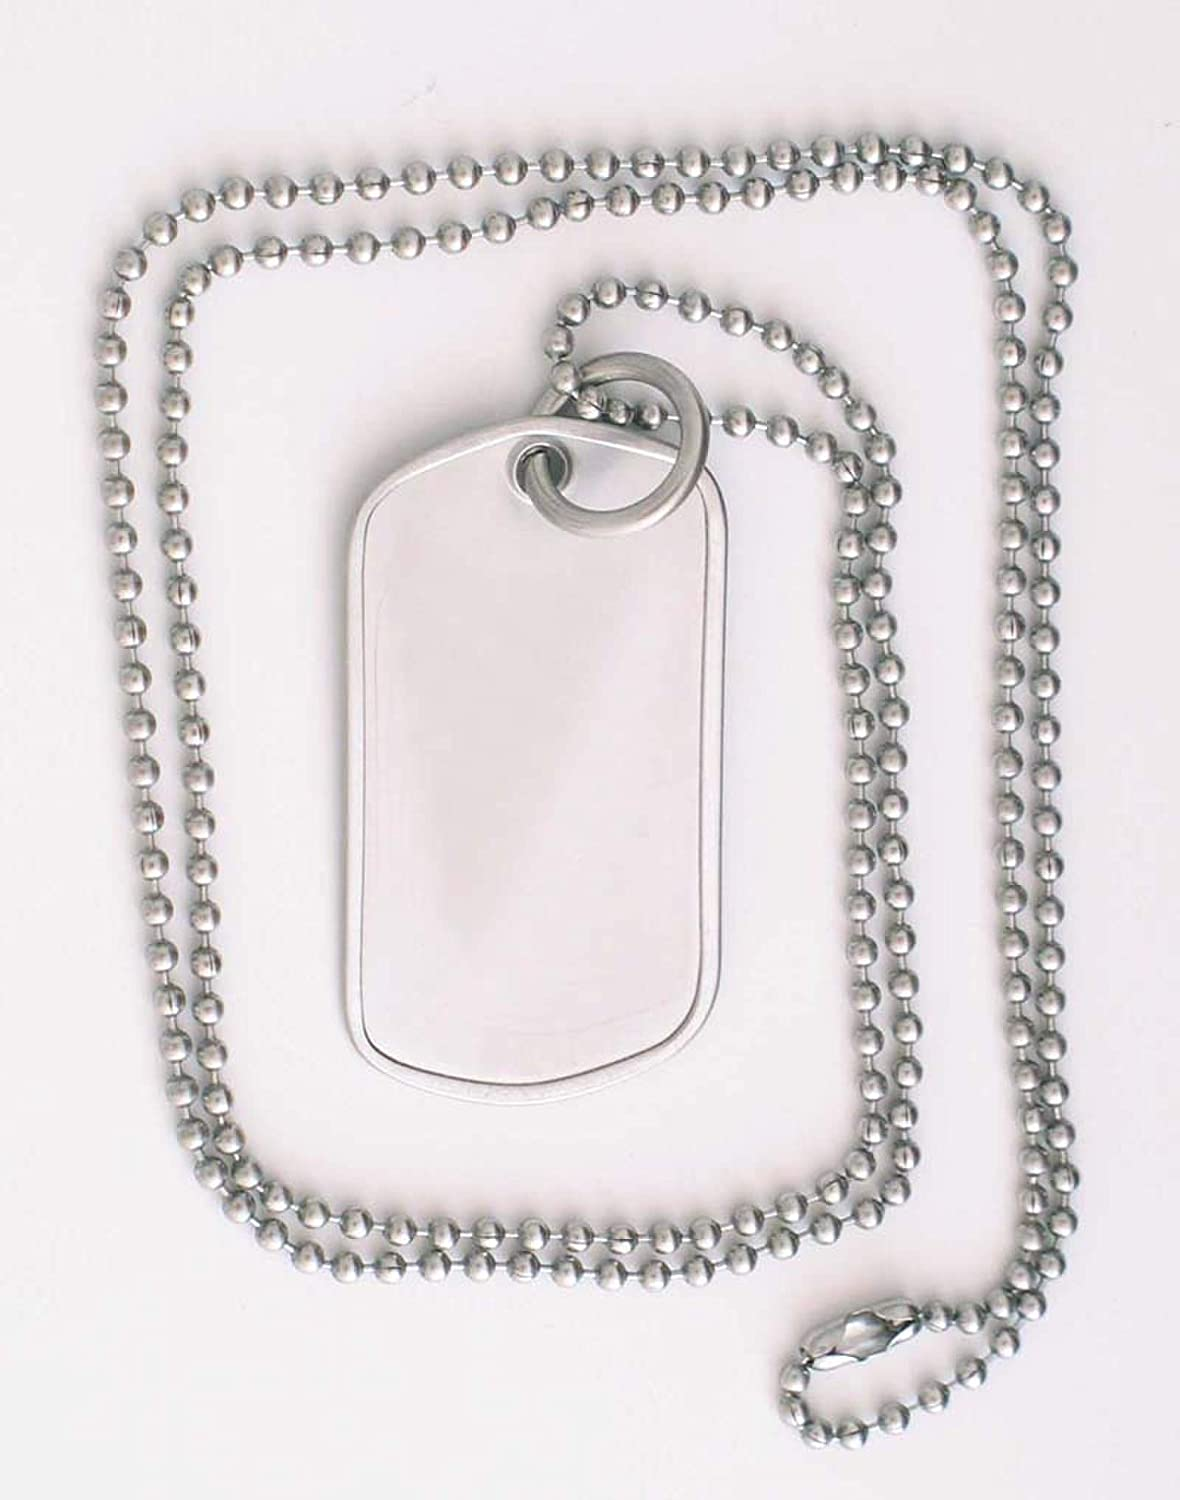 Serenity is Forever 15 Year Sobriety Anniversary Stainless Steel Dog Tag Necklace for Sober Birthday NA Narcotics Anonymous AA Alcoholics Anonymous